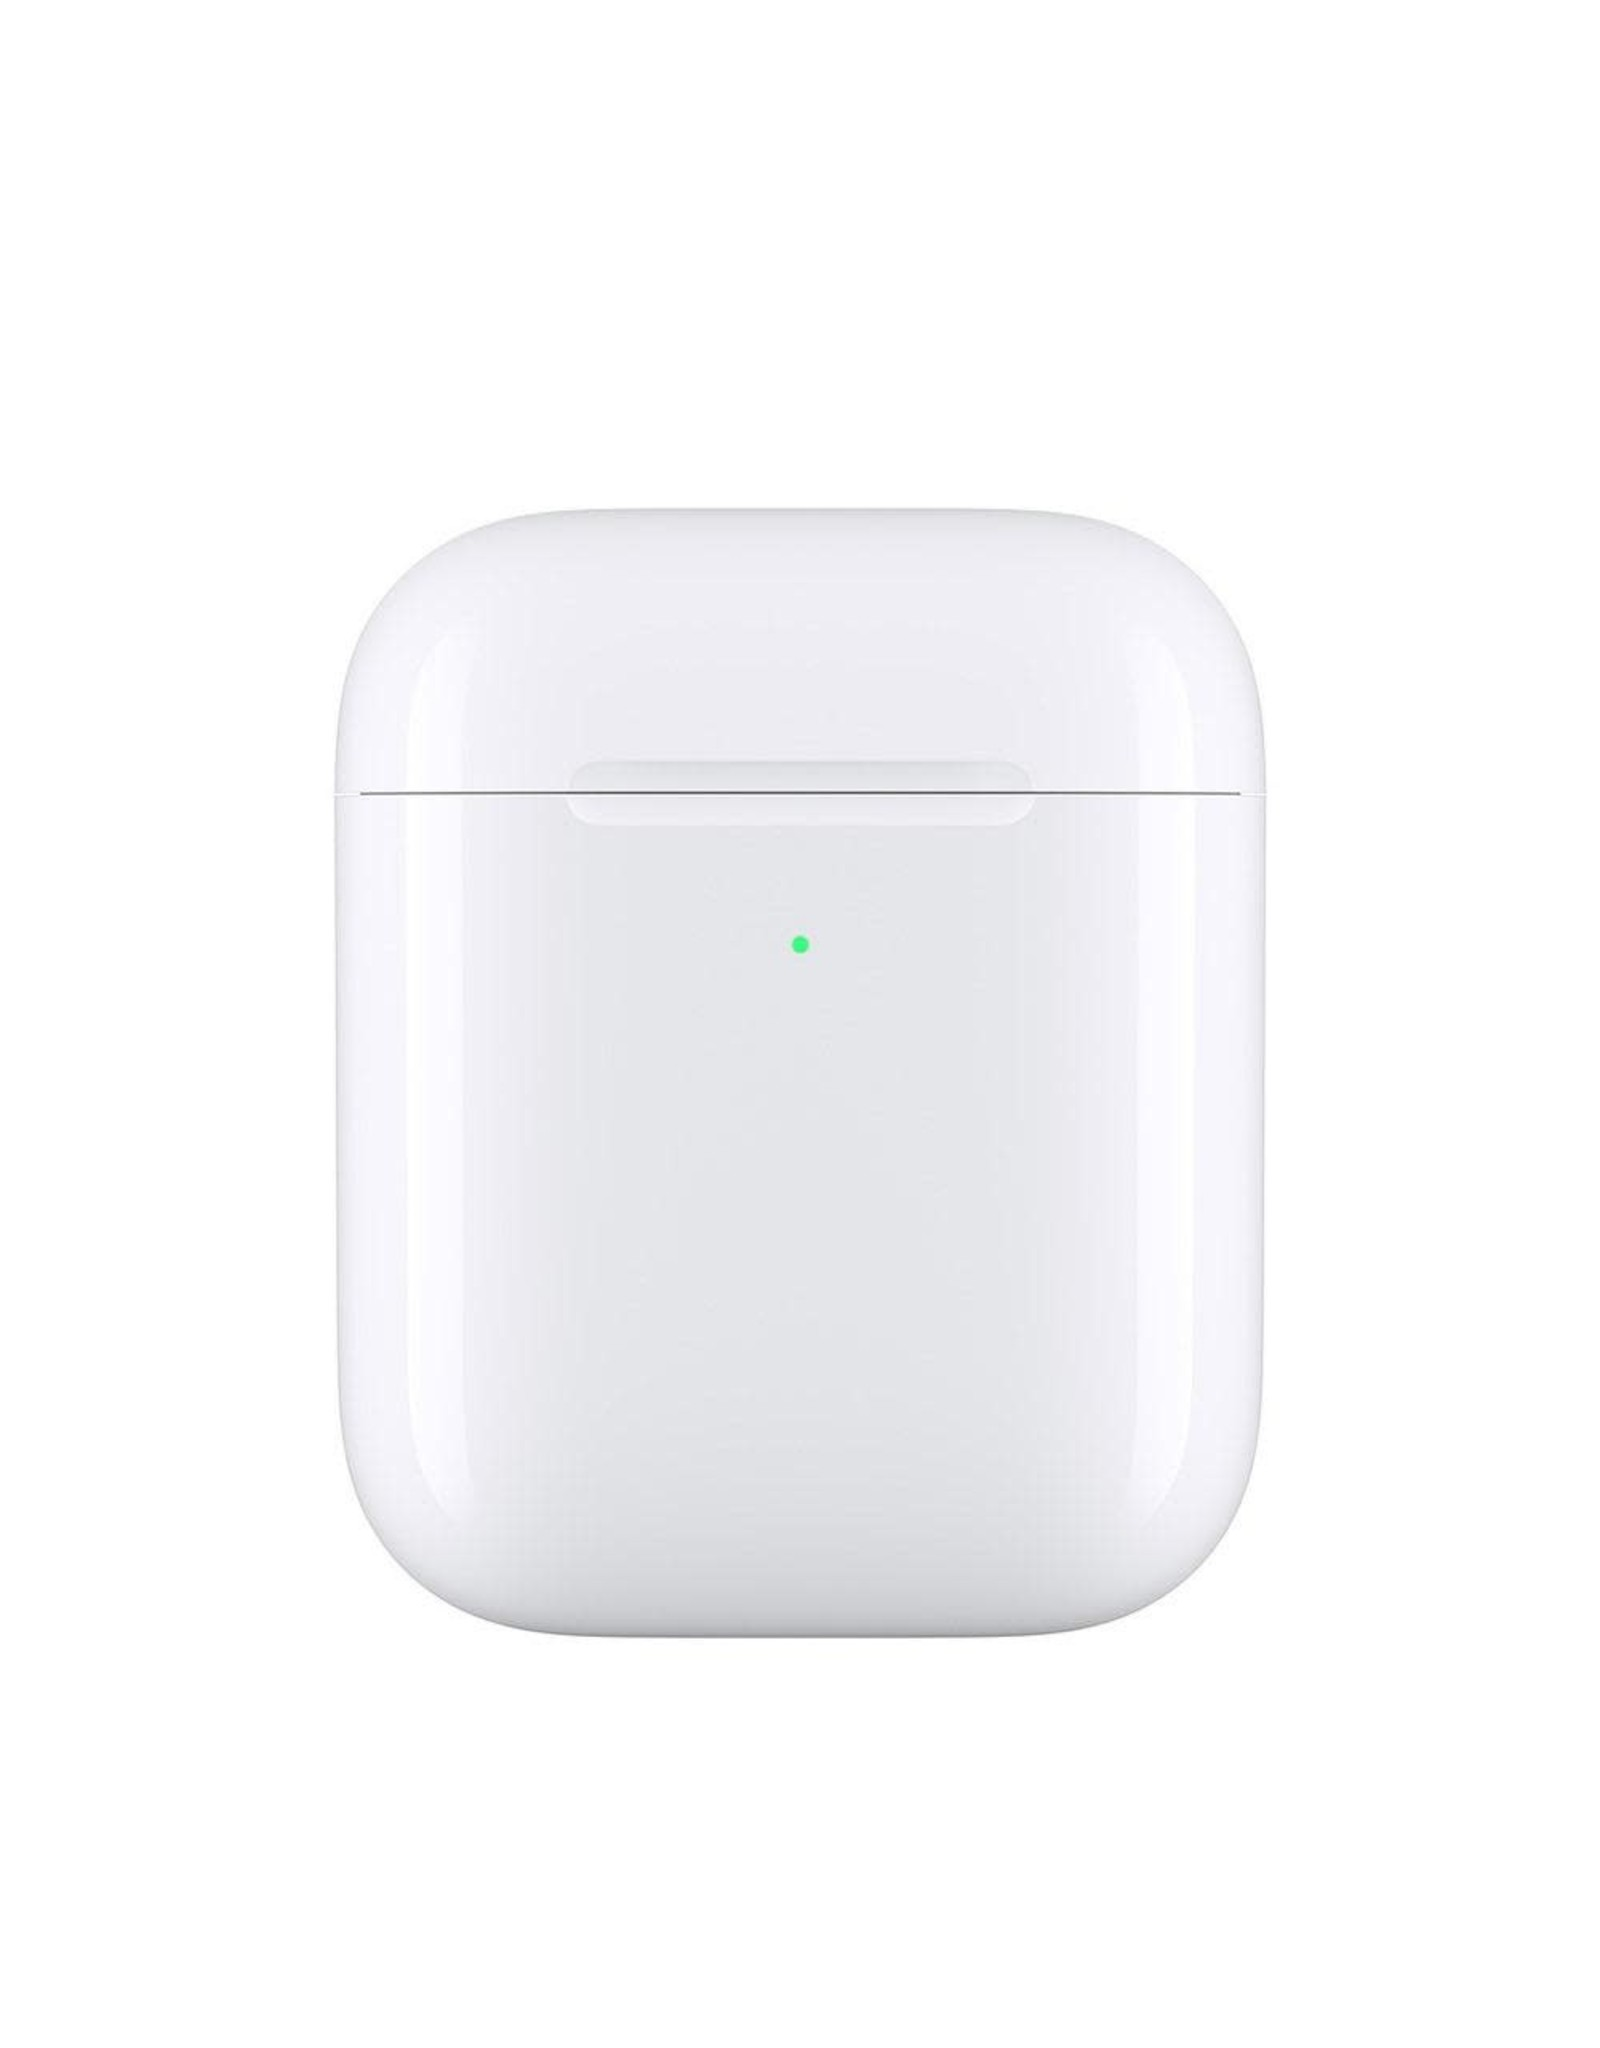 Apple Apple Wireless Charging Case for AirPods (Airpods not included)